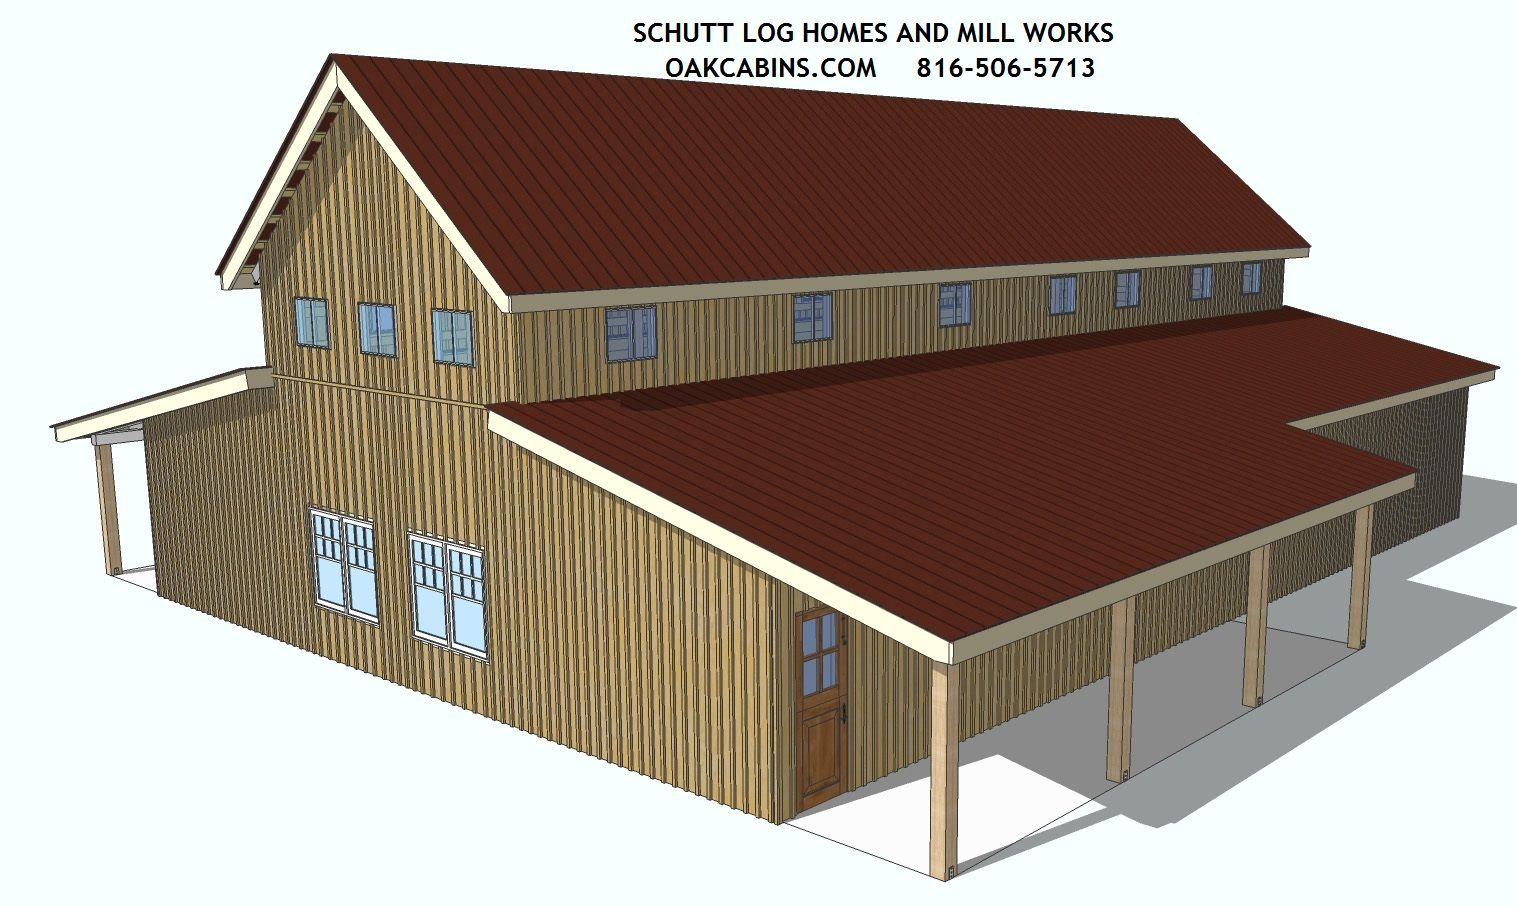 thumbnail kit horse kits barn gable powell dcs structures barns category dc